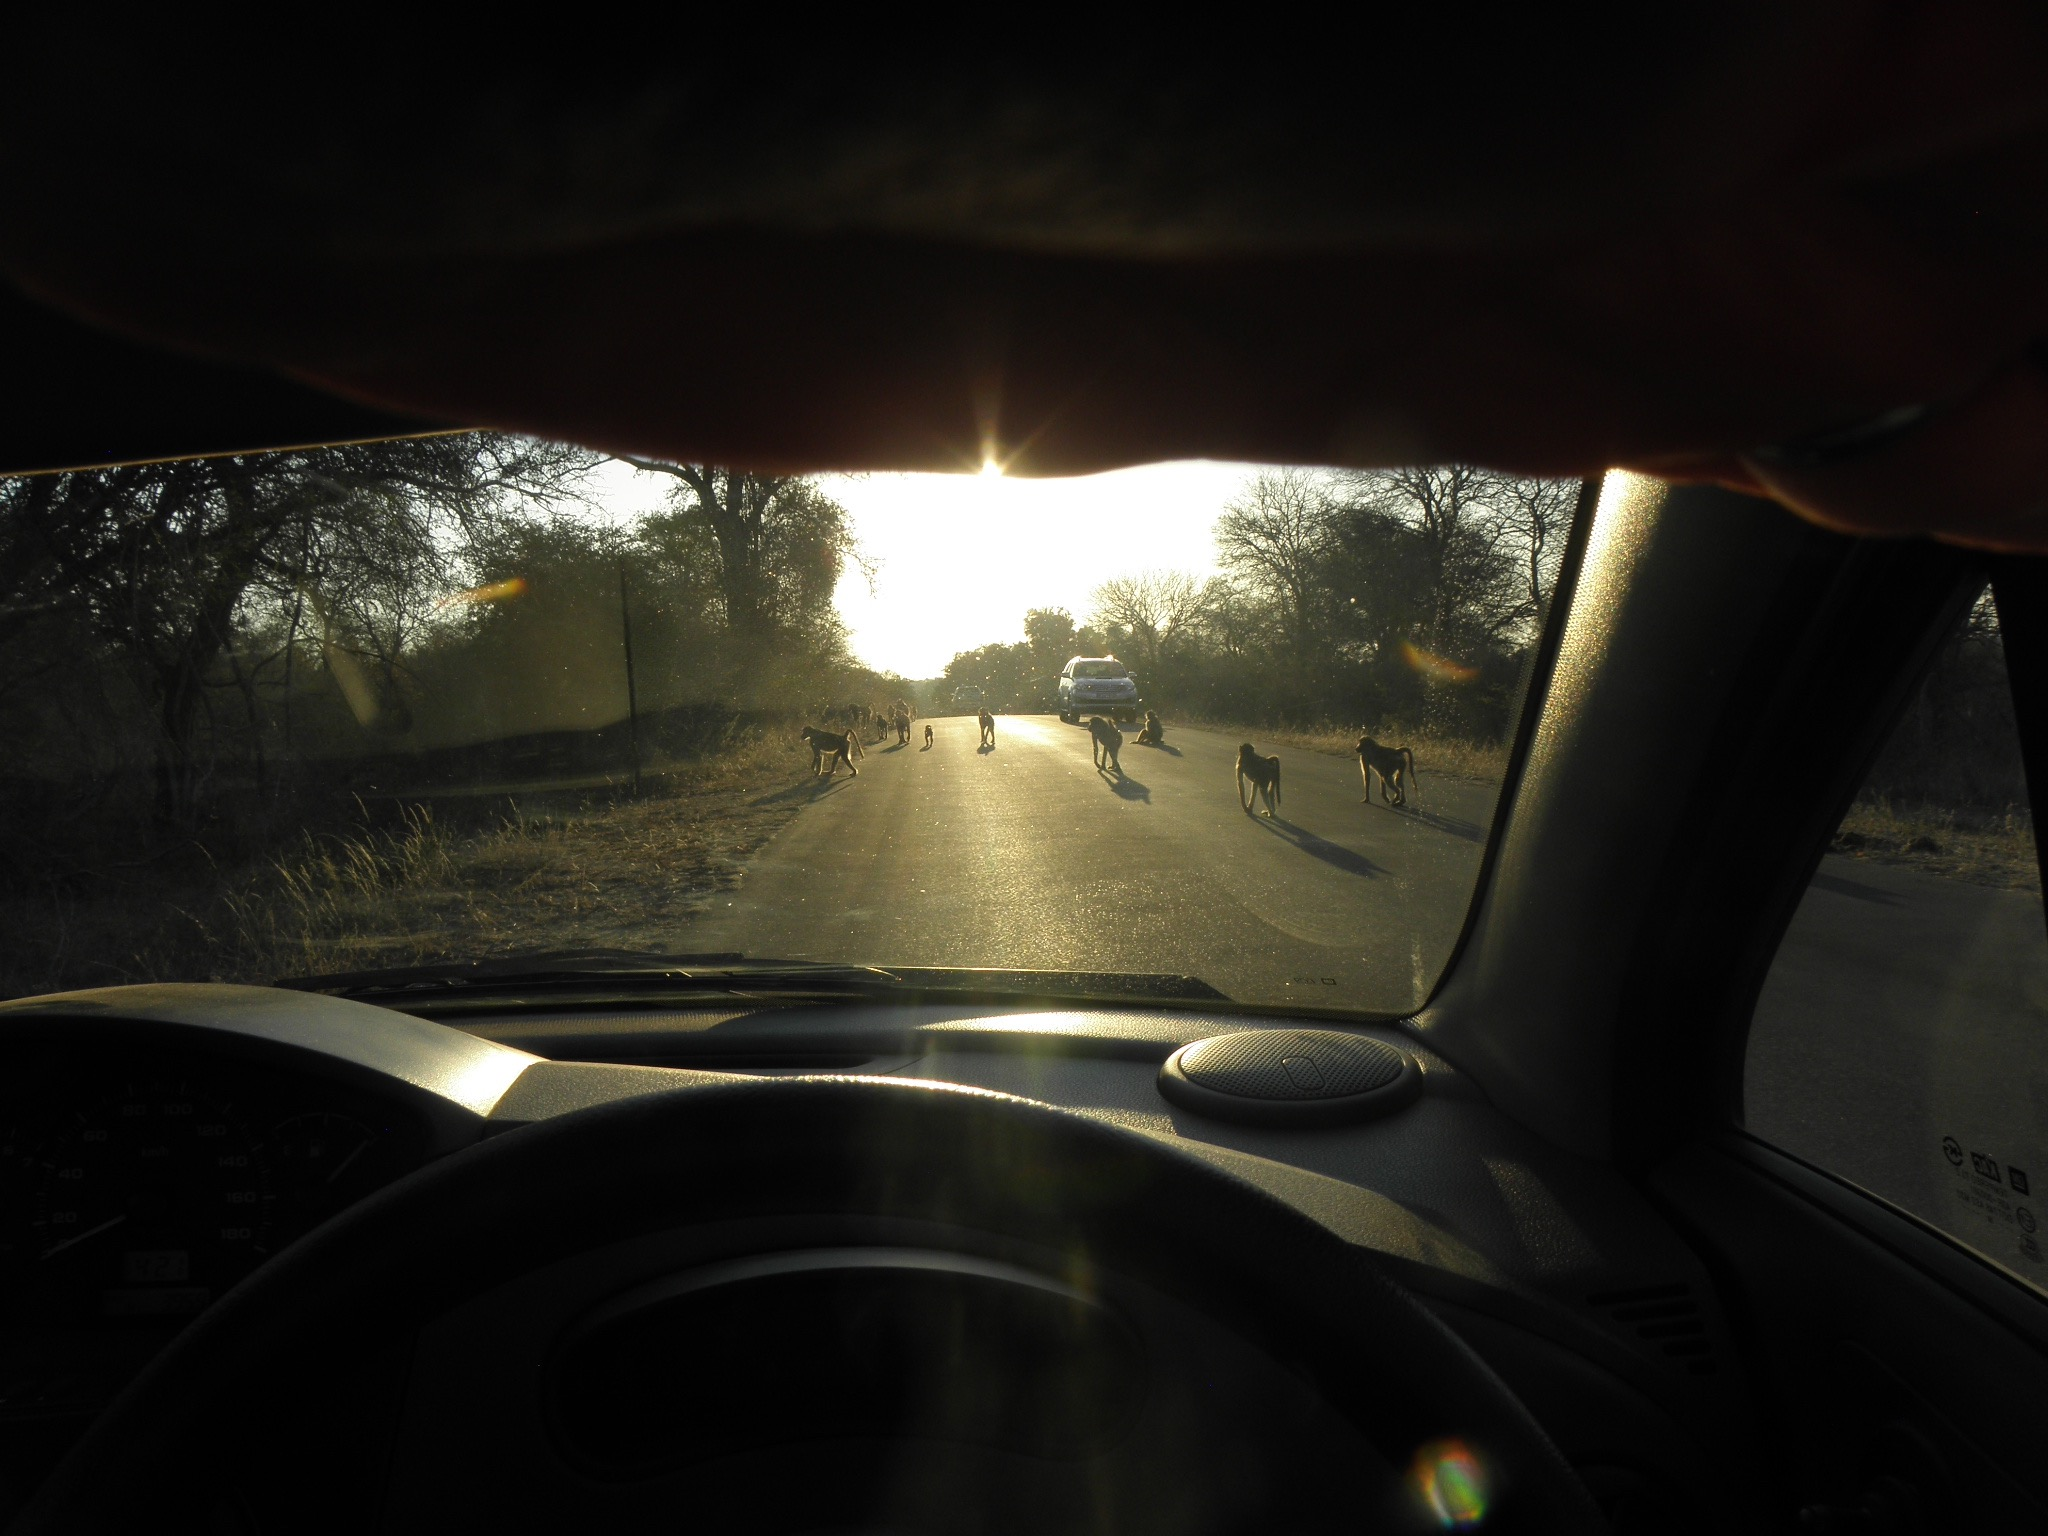 Kruger babooons on road